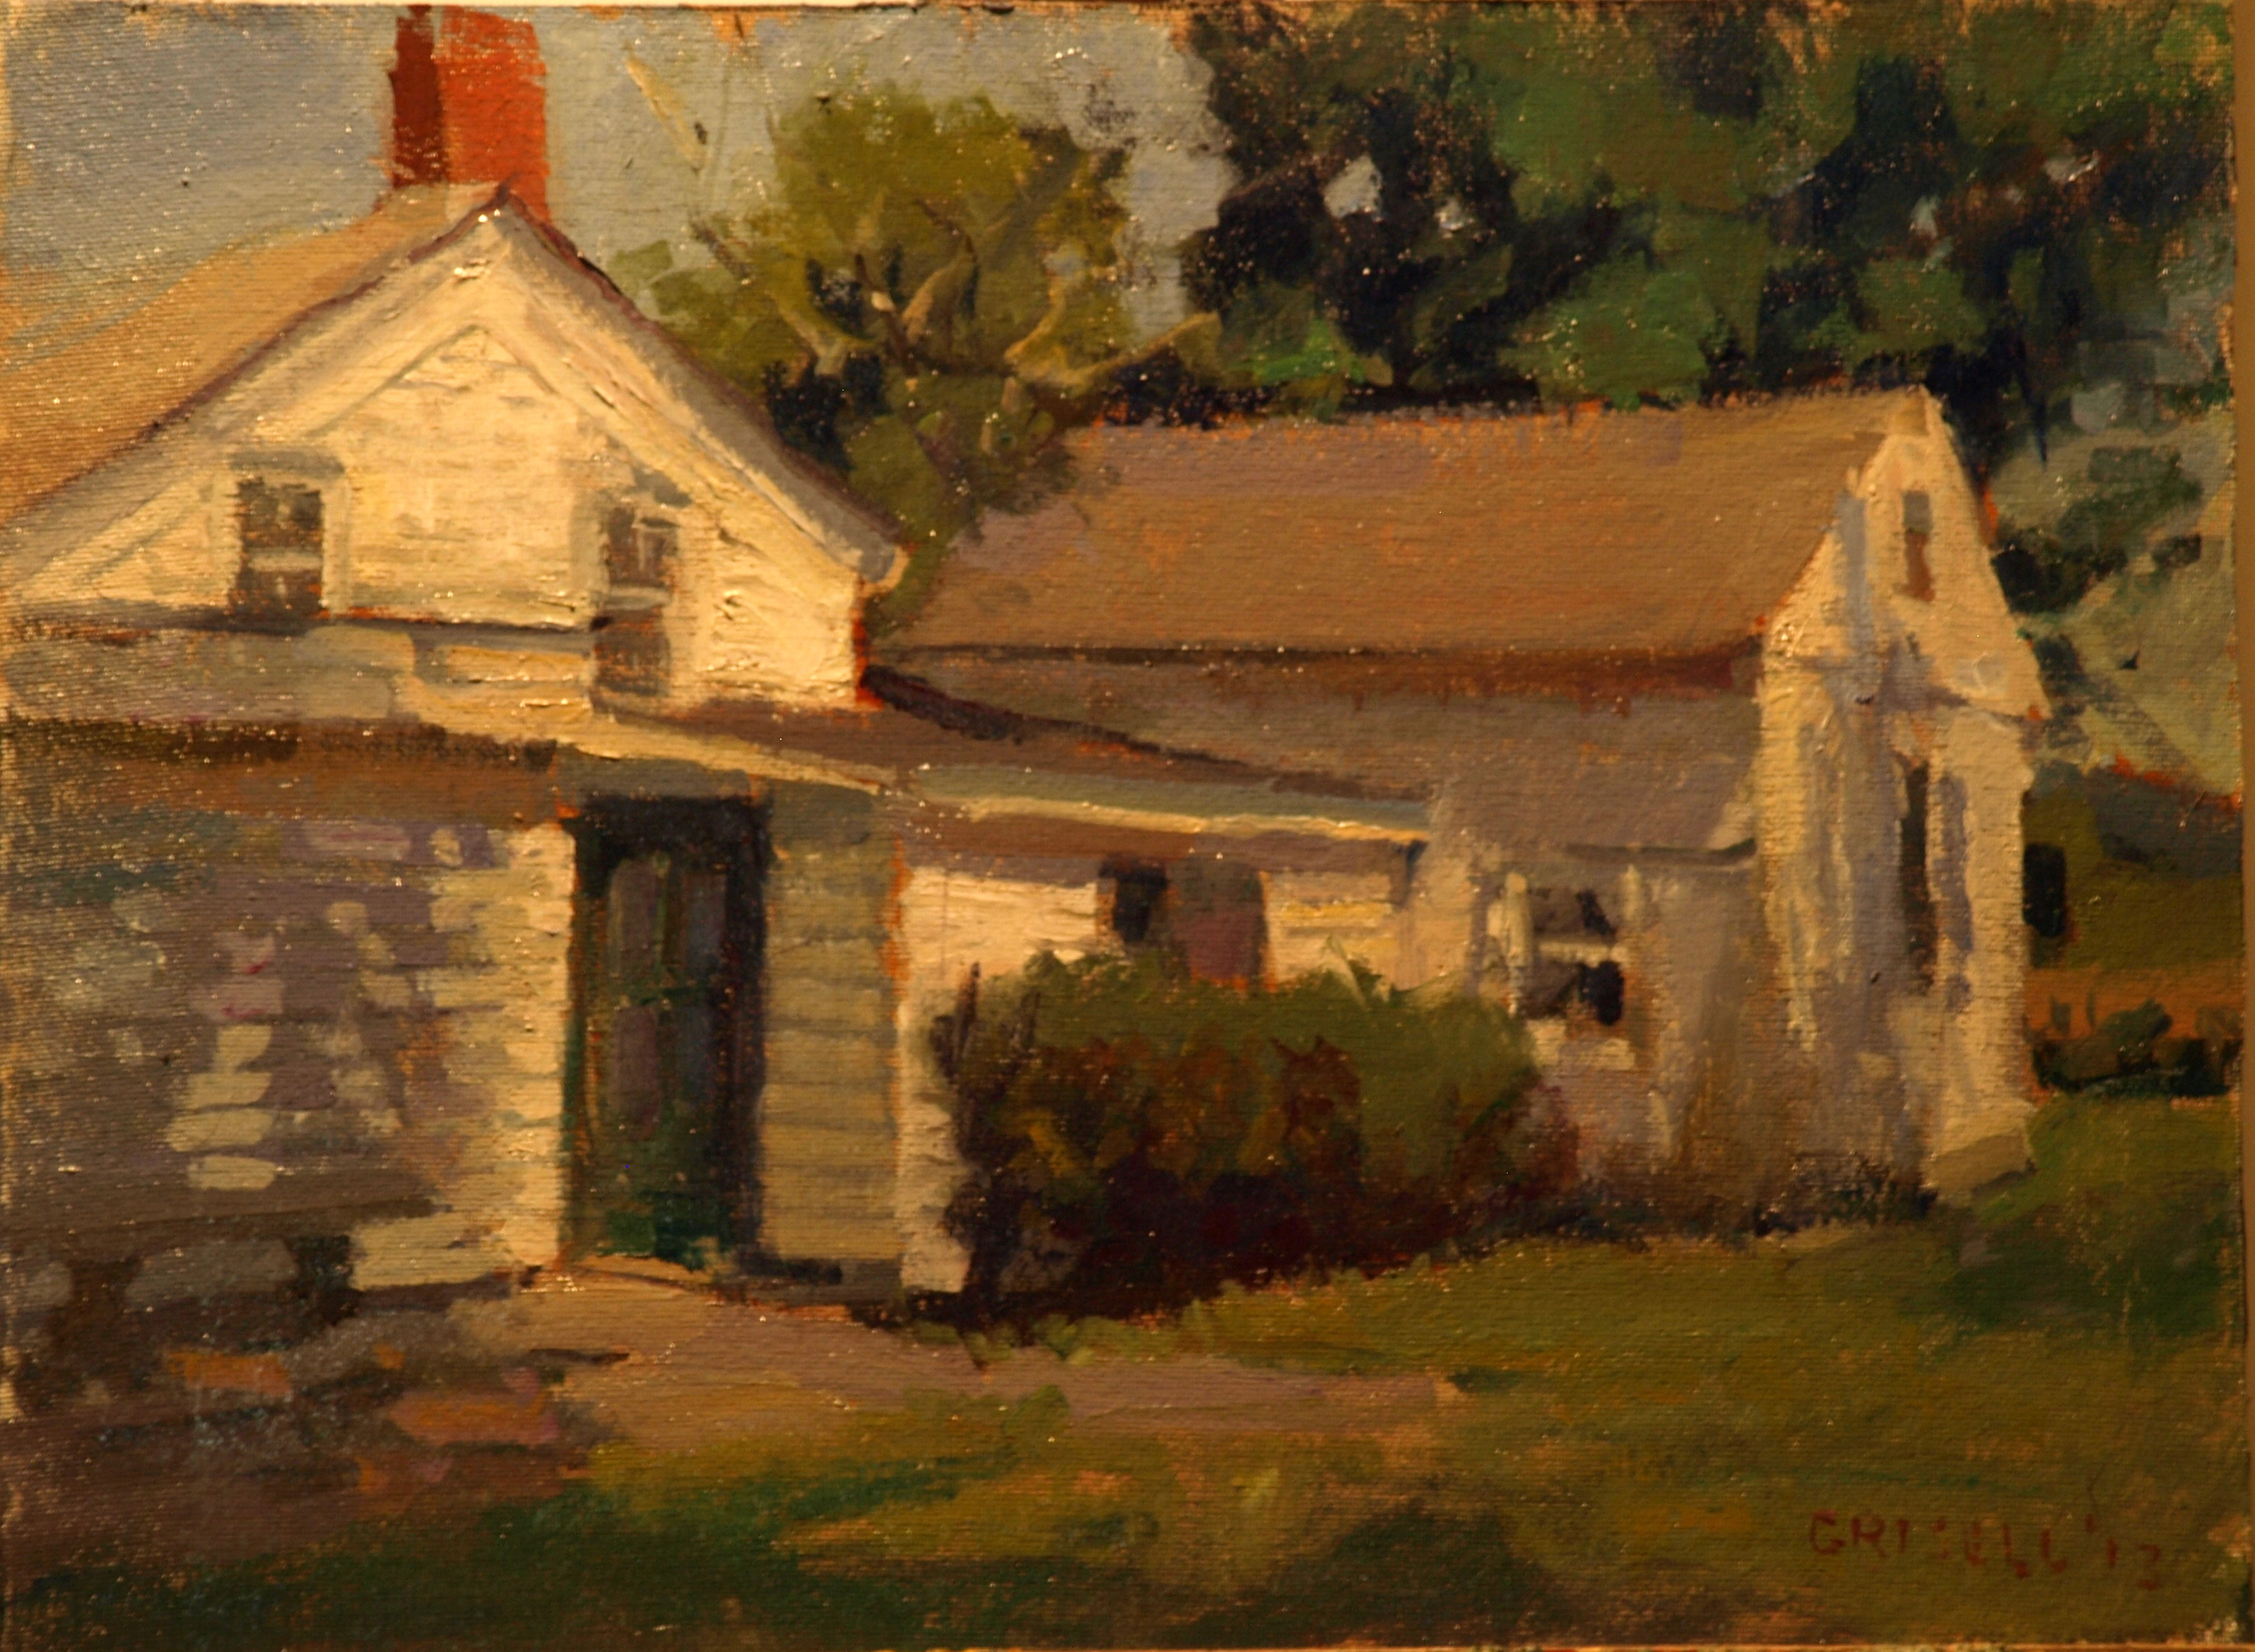 Farmhouse, Oil on Canvas on Panel, 12 x 16 Inches, by Susan Grisell, $275